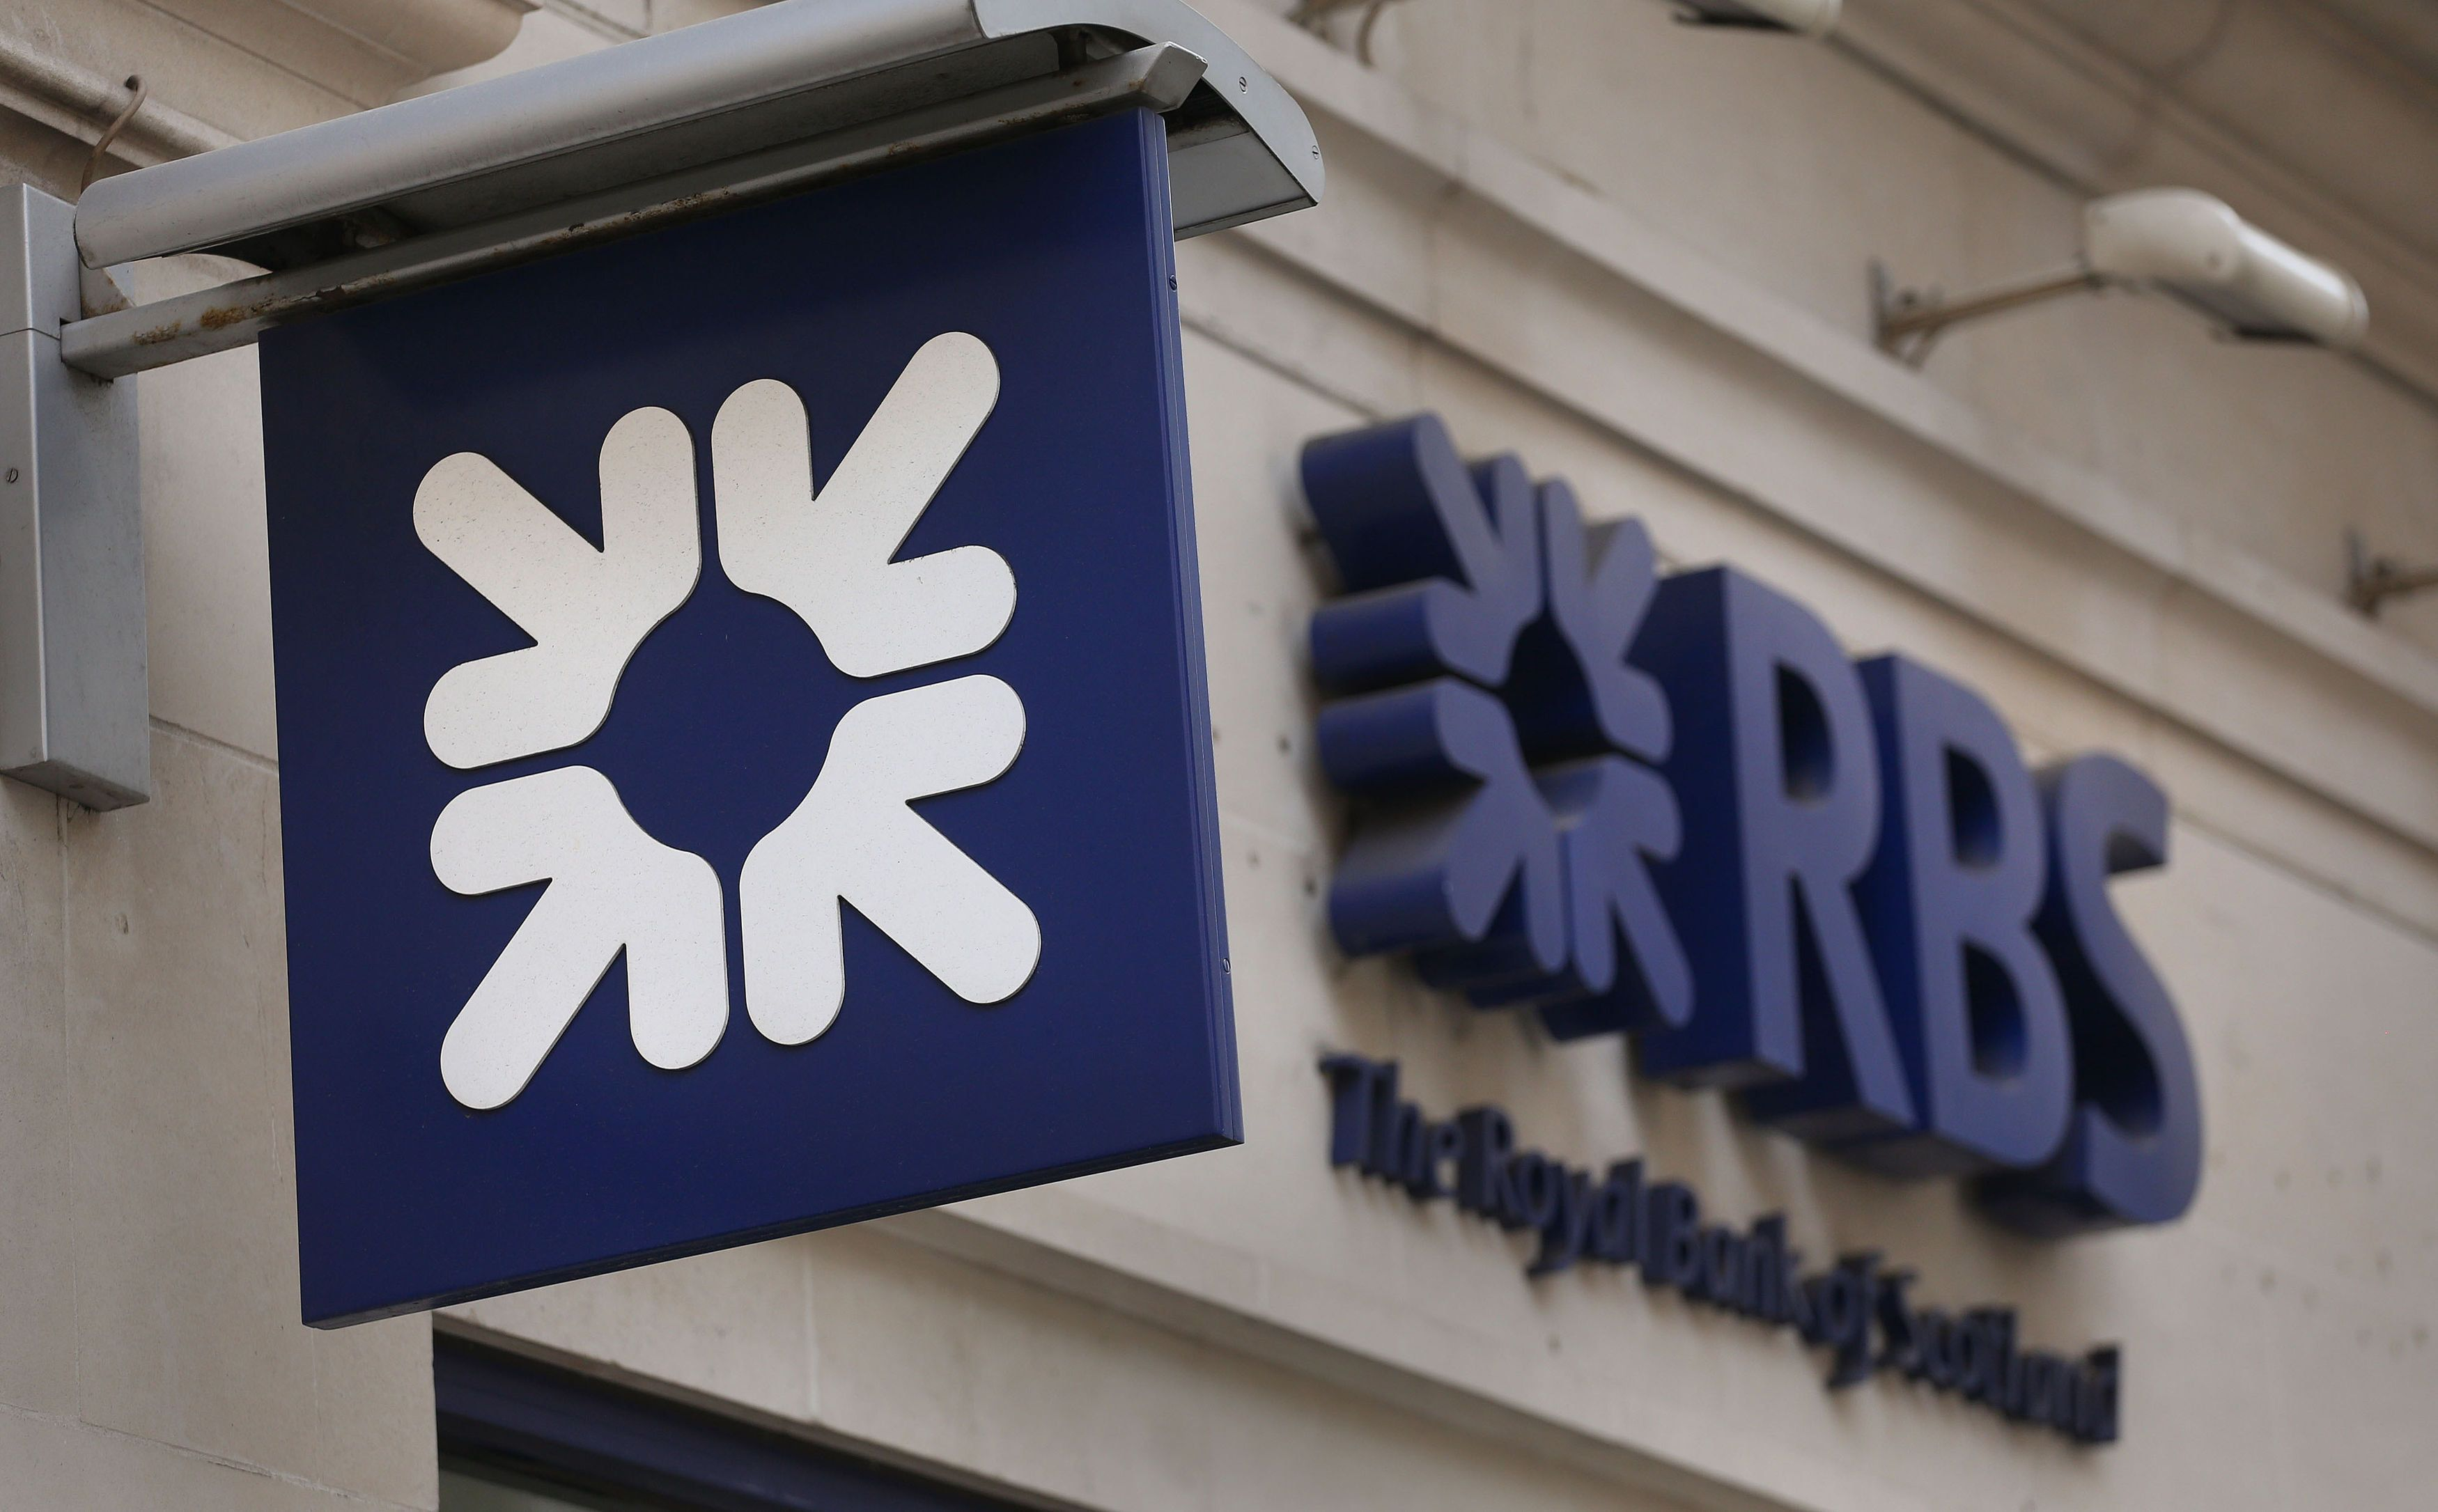 'Let Customers Hang Themselves': Secret RBS Memo Sent In The Wake Of The Financial Crash Made Public